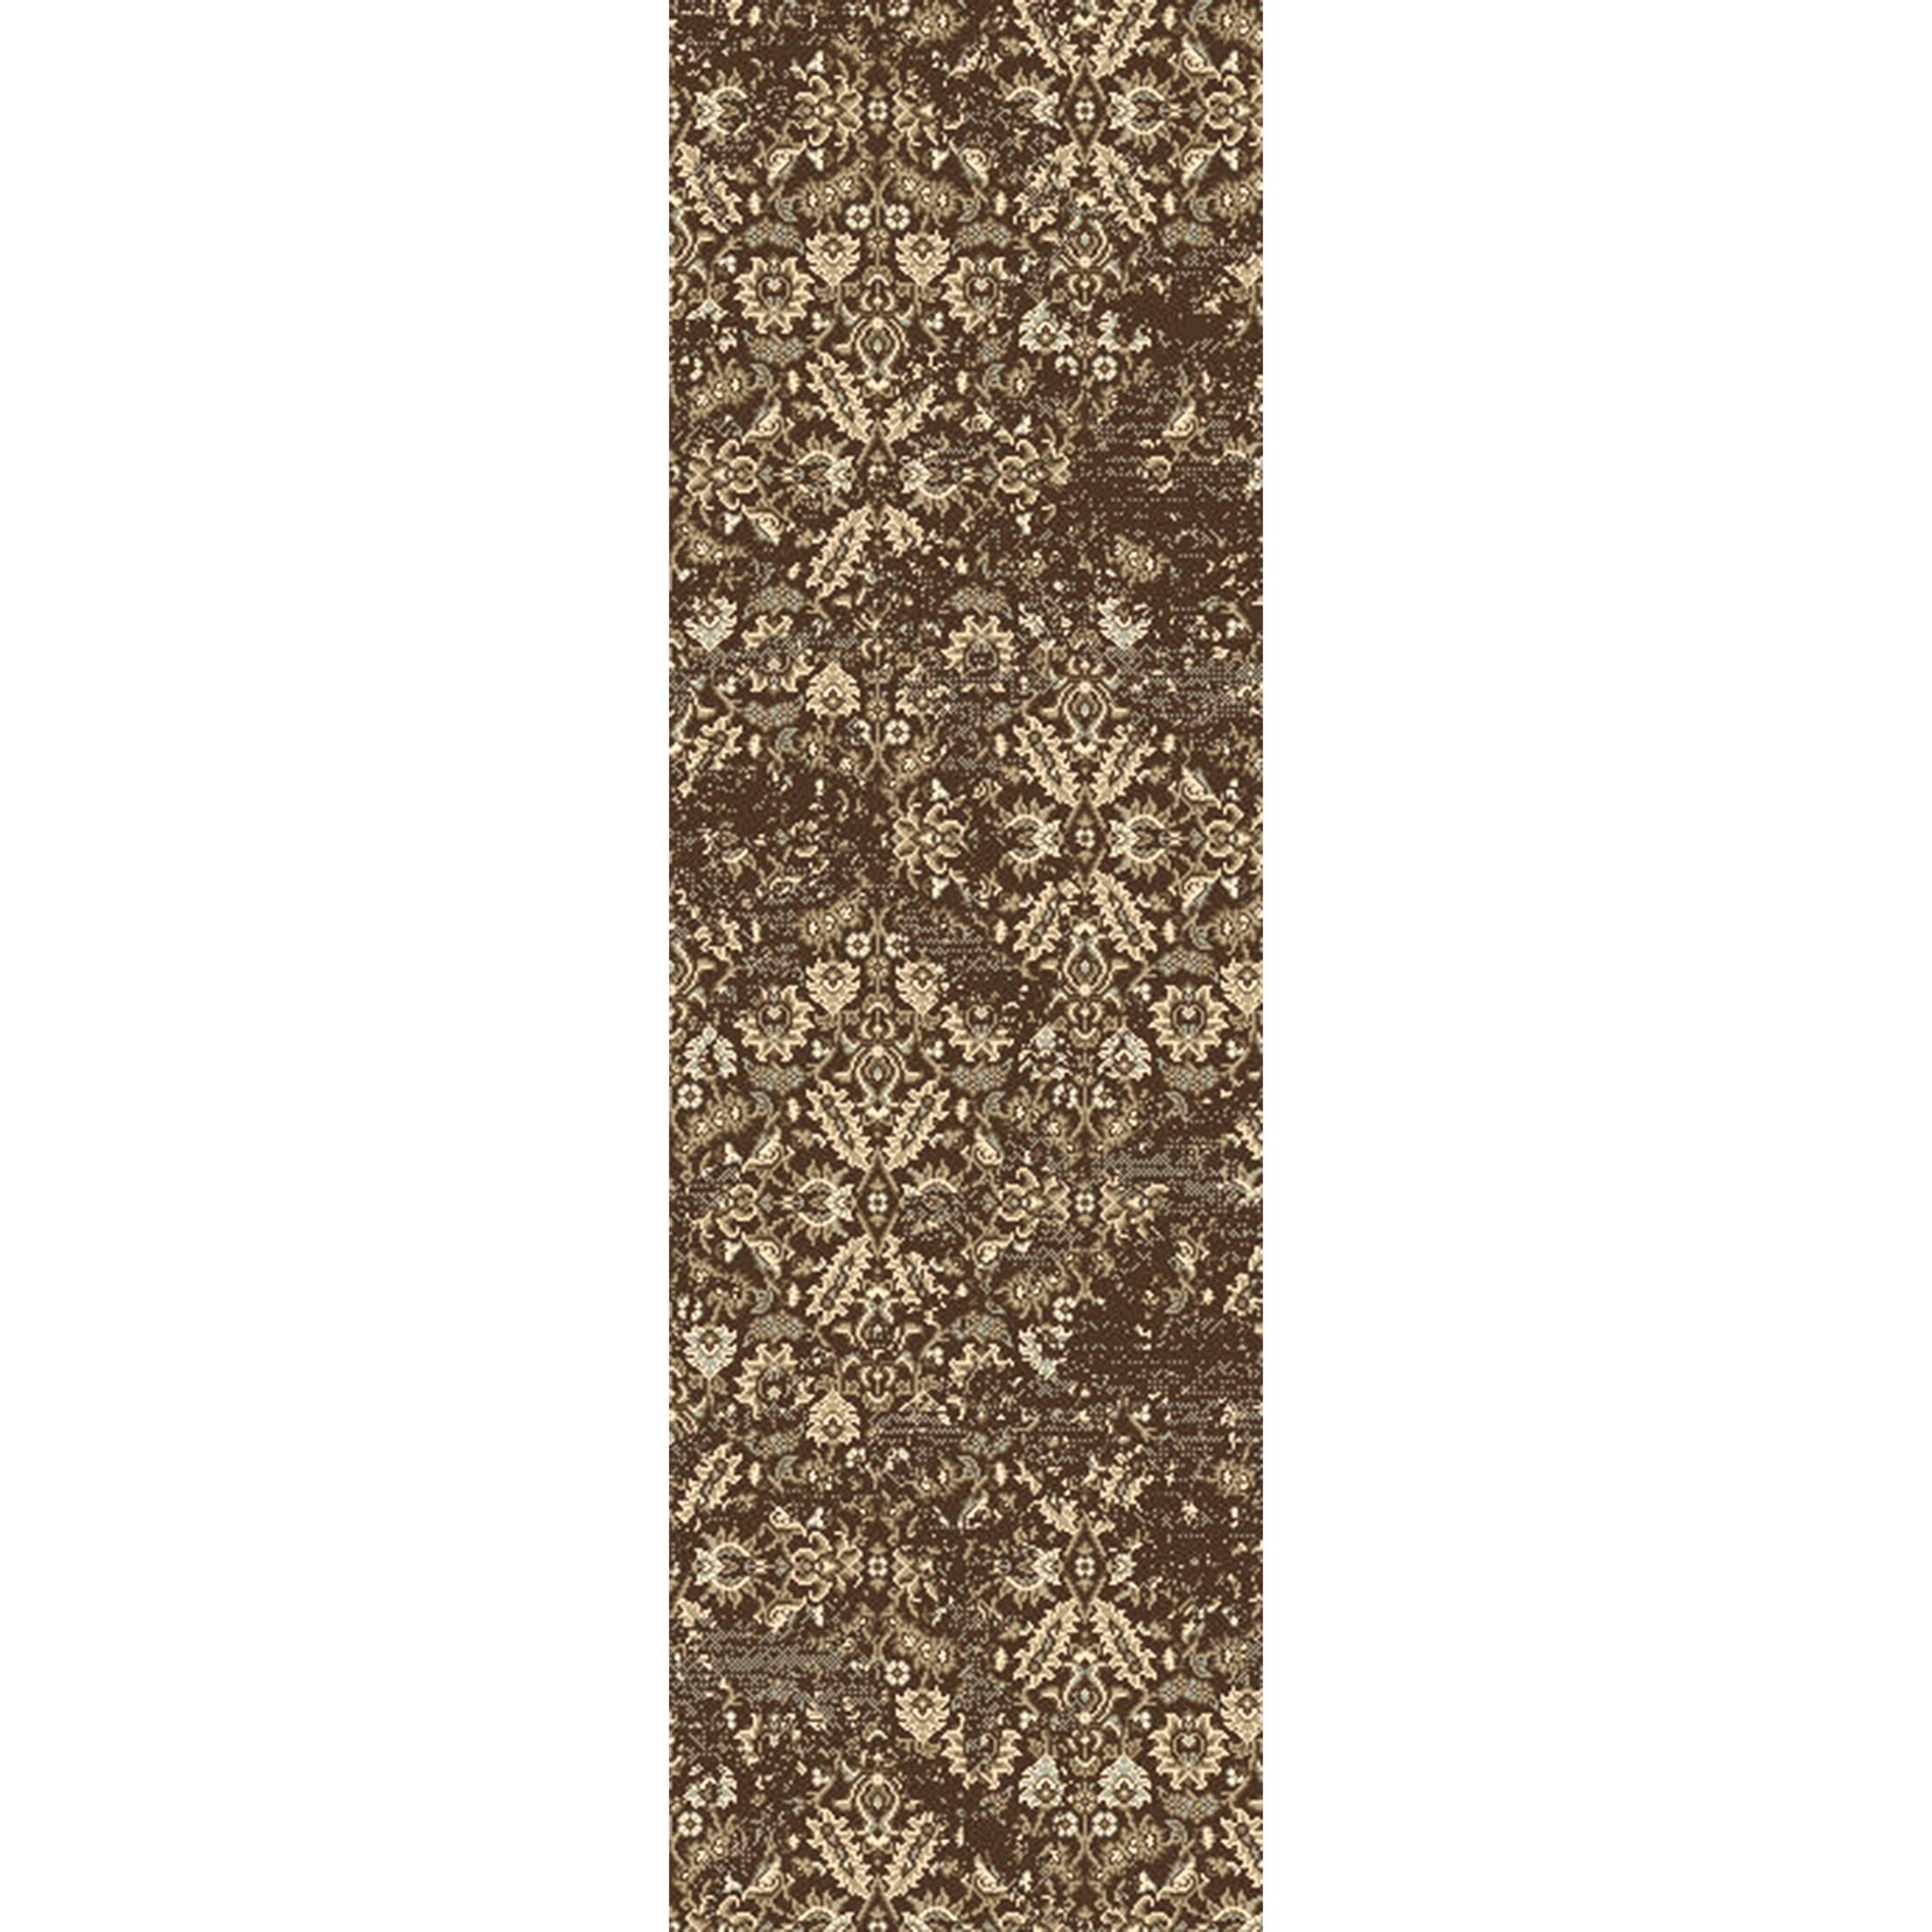 Kulpmont Floral and Plant Dark Brown Area Rug Rug Size: Rectangle 7'9